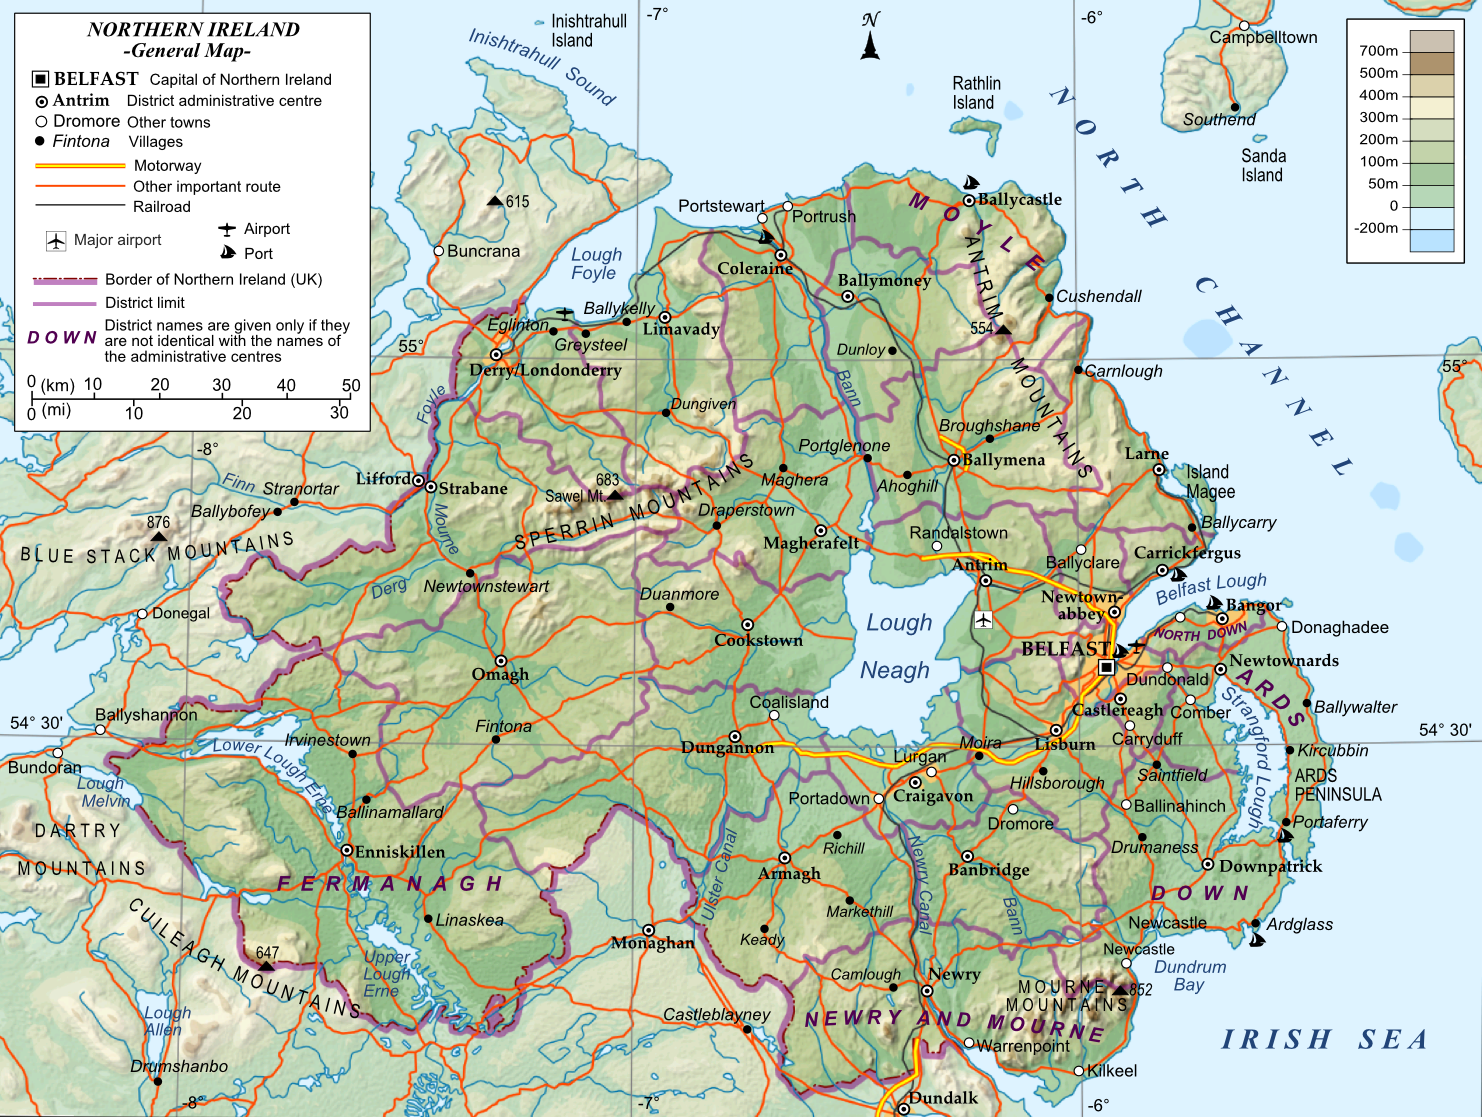 Map Of N Ireland.Northern Ireland General Map Northern Ireland Mappery